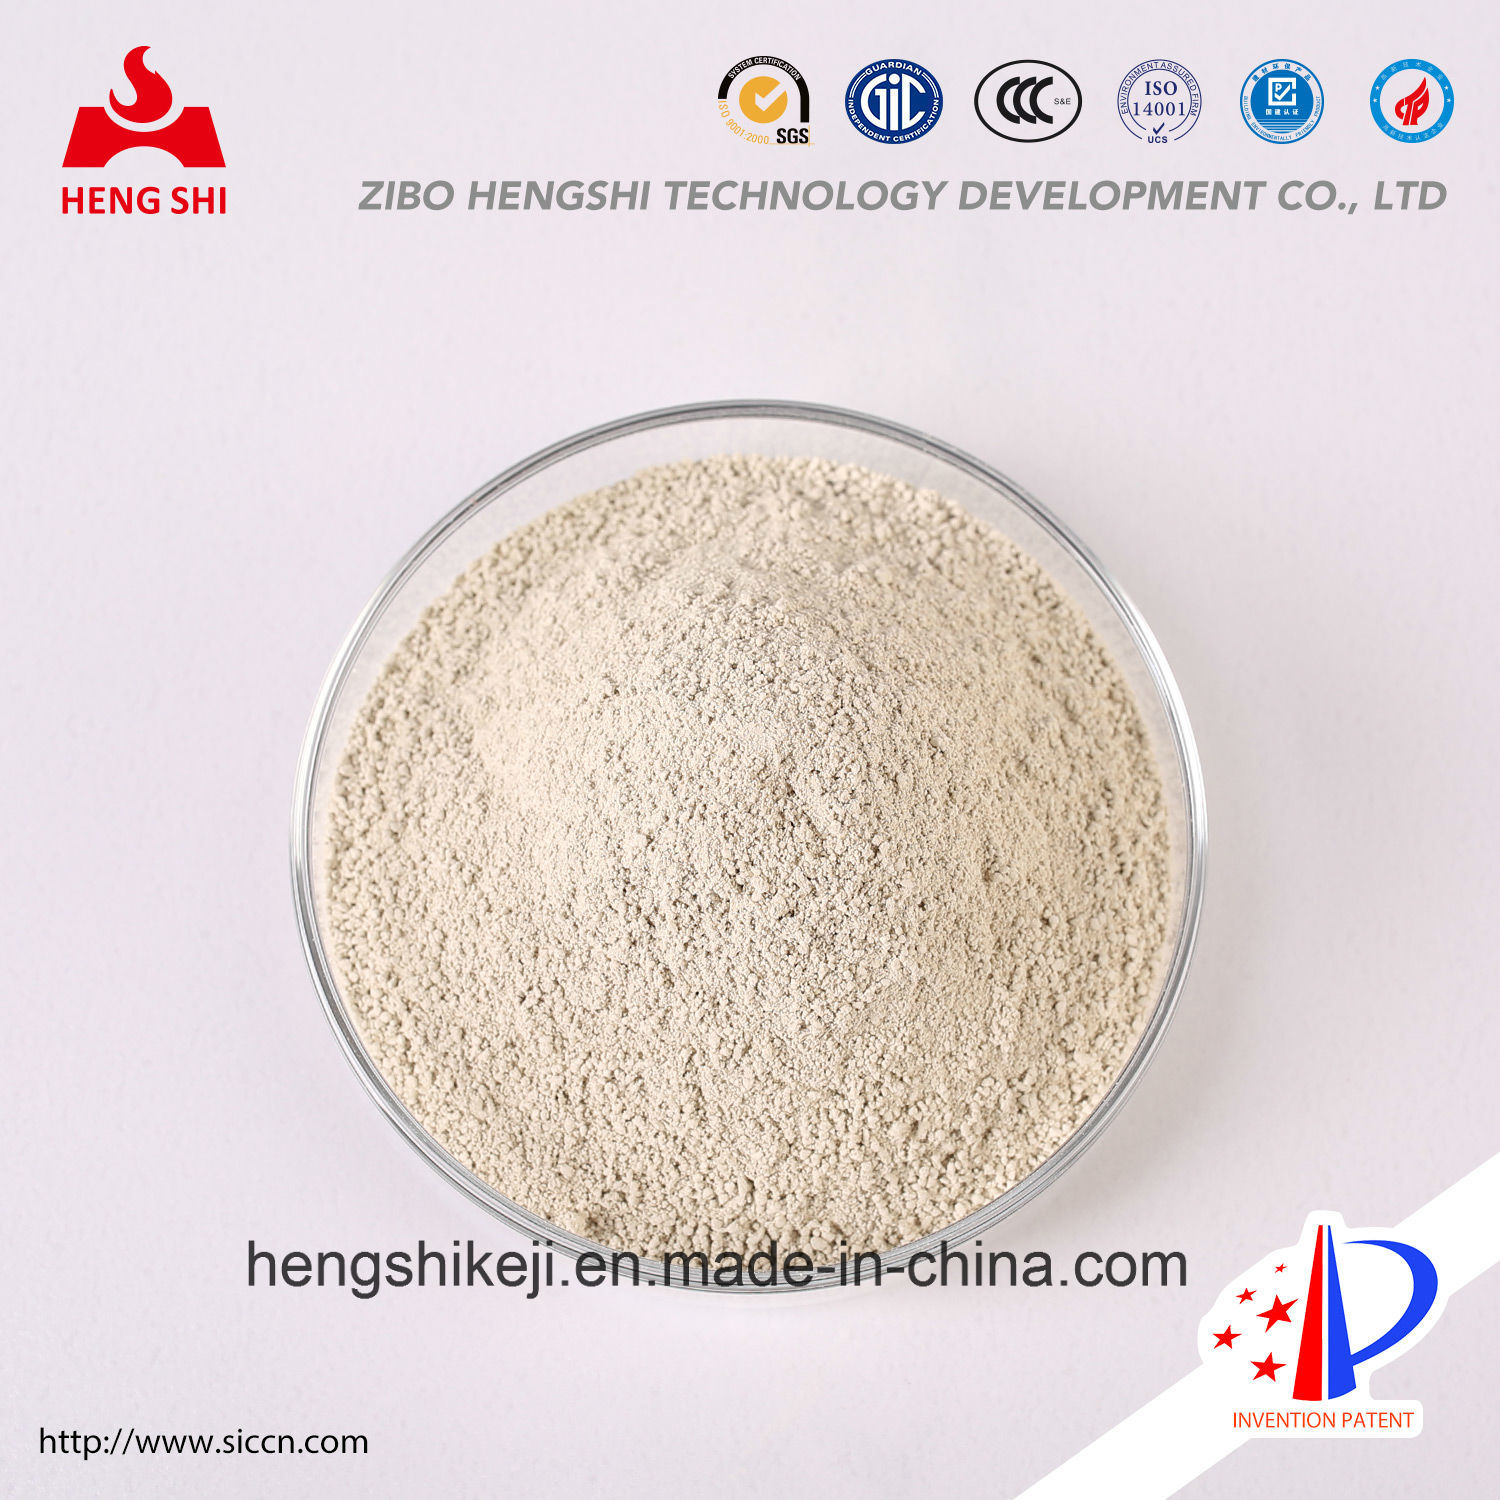 Refractory/Ceramic/Photovoltaic Grades Silicon Nitride Powder in Nonferrous Metals/Energy/Military Fields